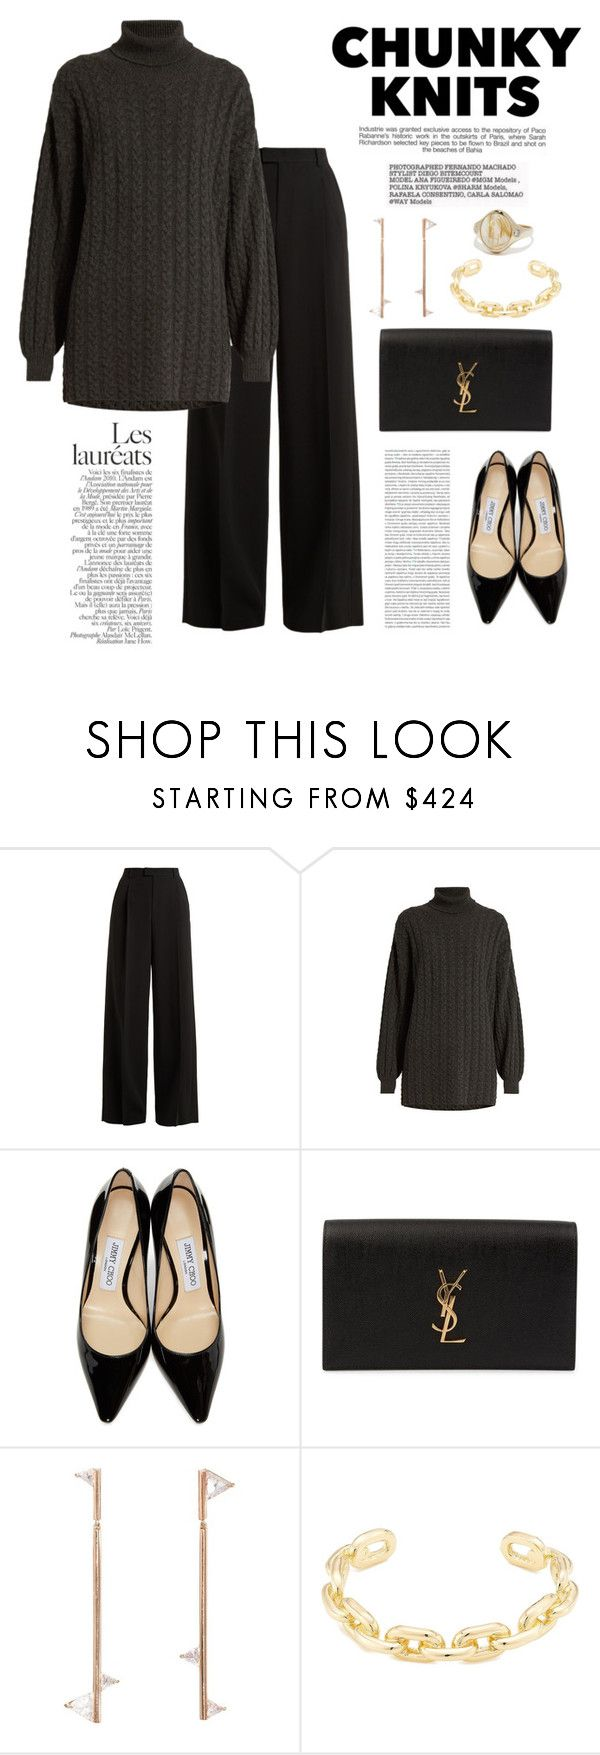 """Chunky Knits"" by windrasiregar ❤ liked on Polyvore featuring RED Valentino, Ryan Roche, Industrie, Jimmy Choo, Yves Saint Laurent, Oris, Eva Fehren, Jennifer Fisher and Pamela Love"